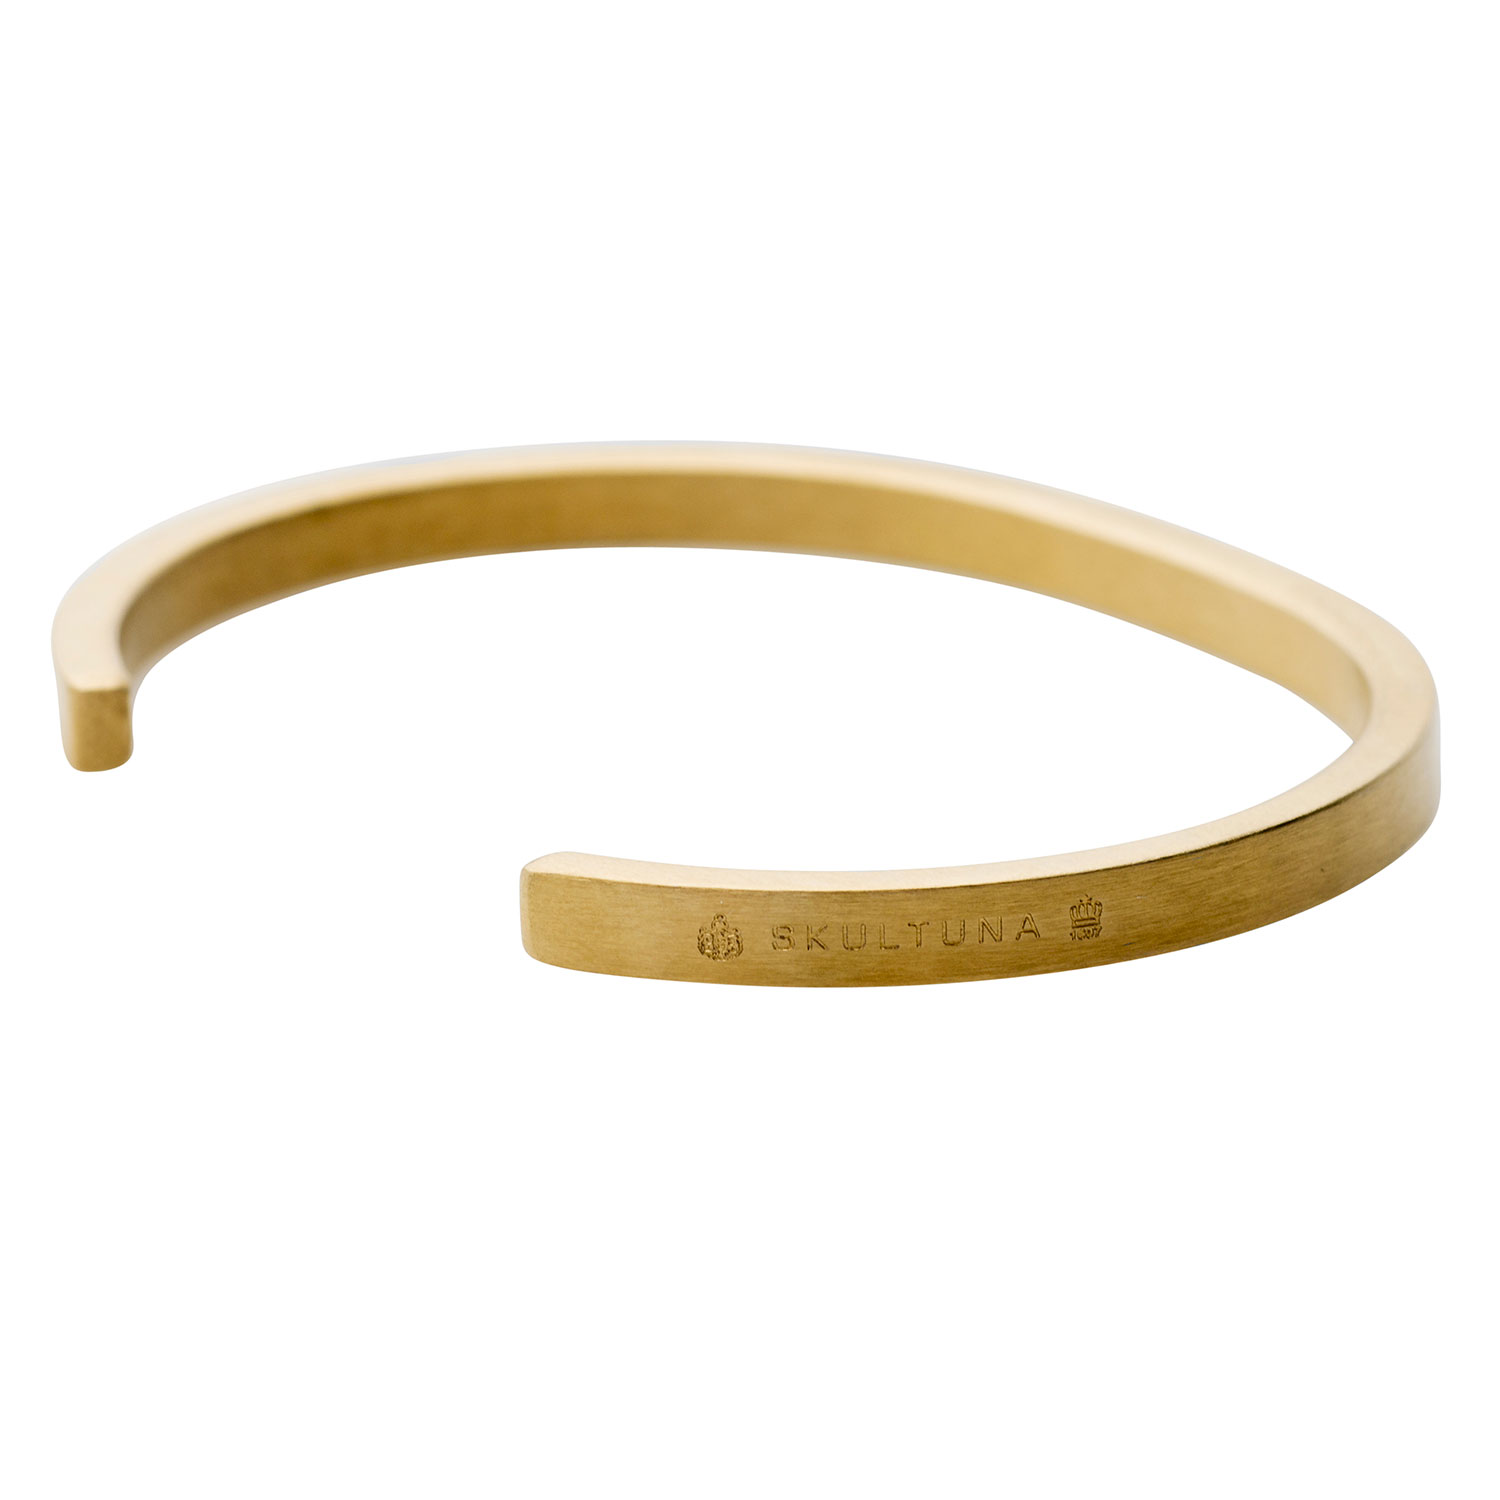 Skultuna-SB Thin Armband Matte Gold, 65 mm